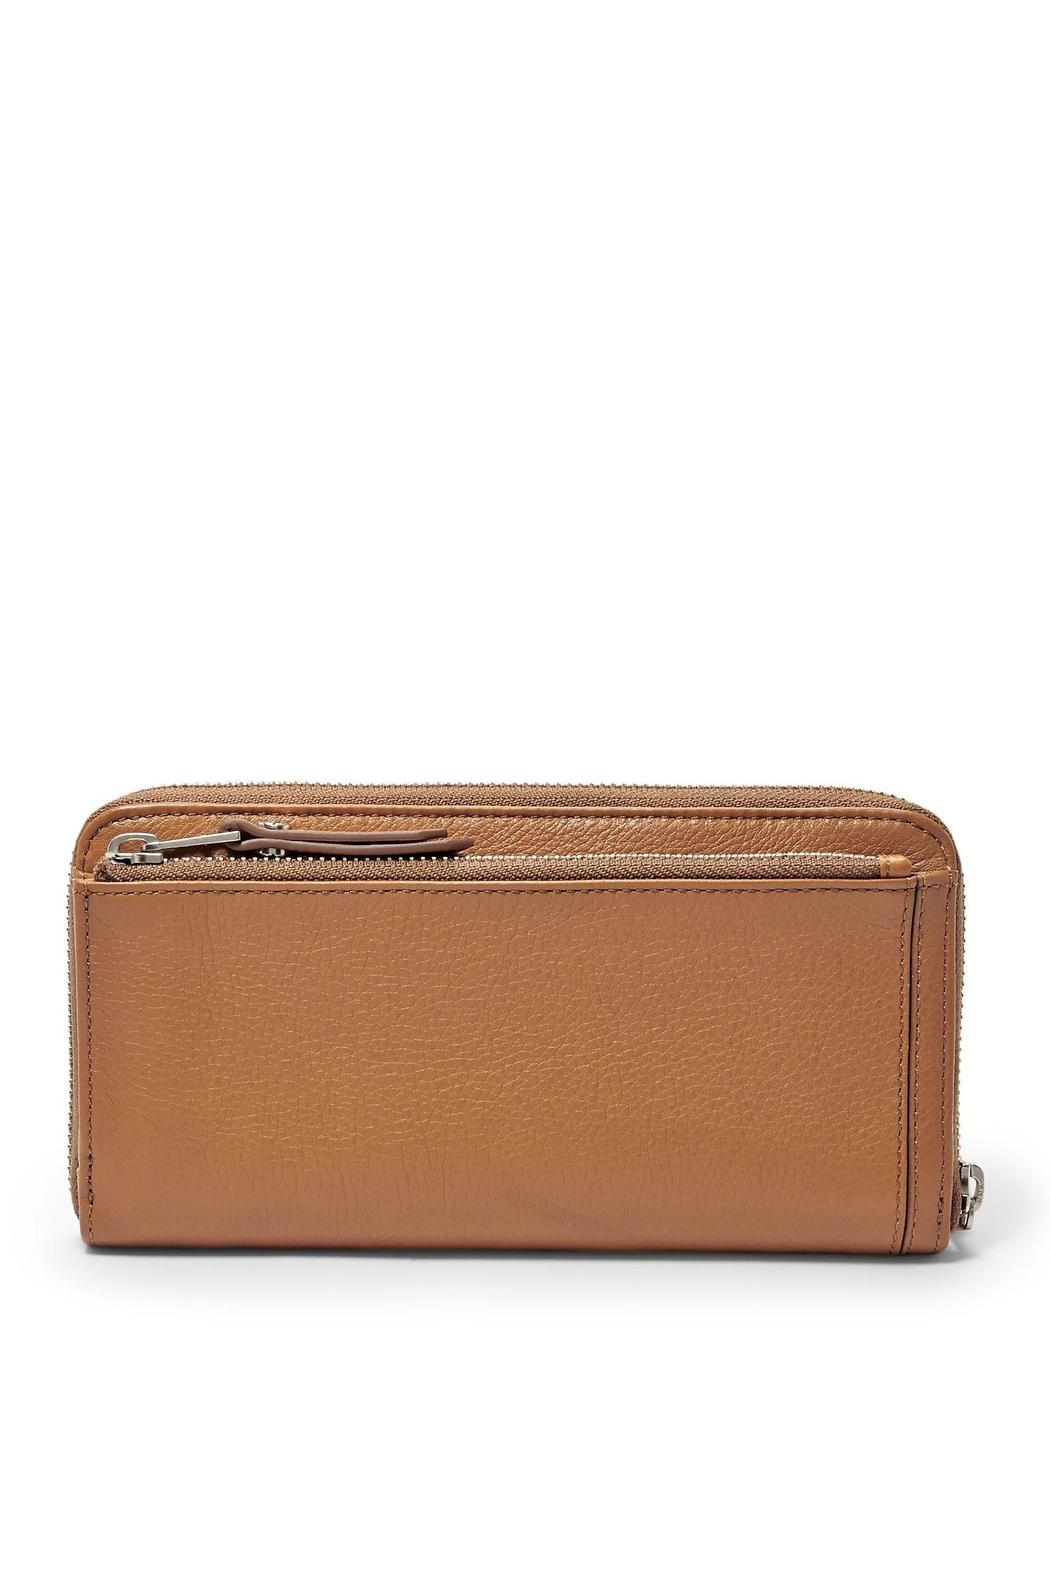 Fossil Dawson Clutch Camel - Side Cropped Image